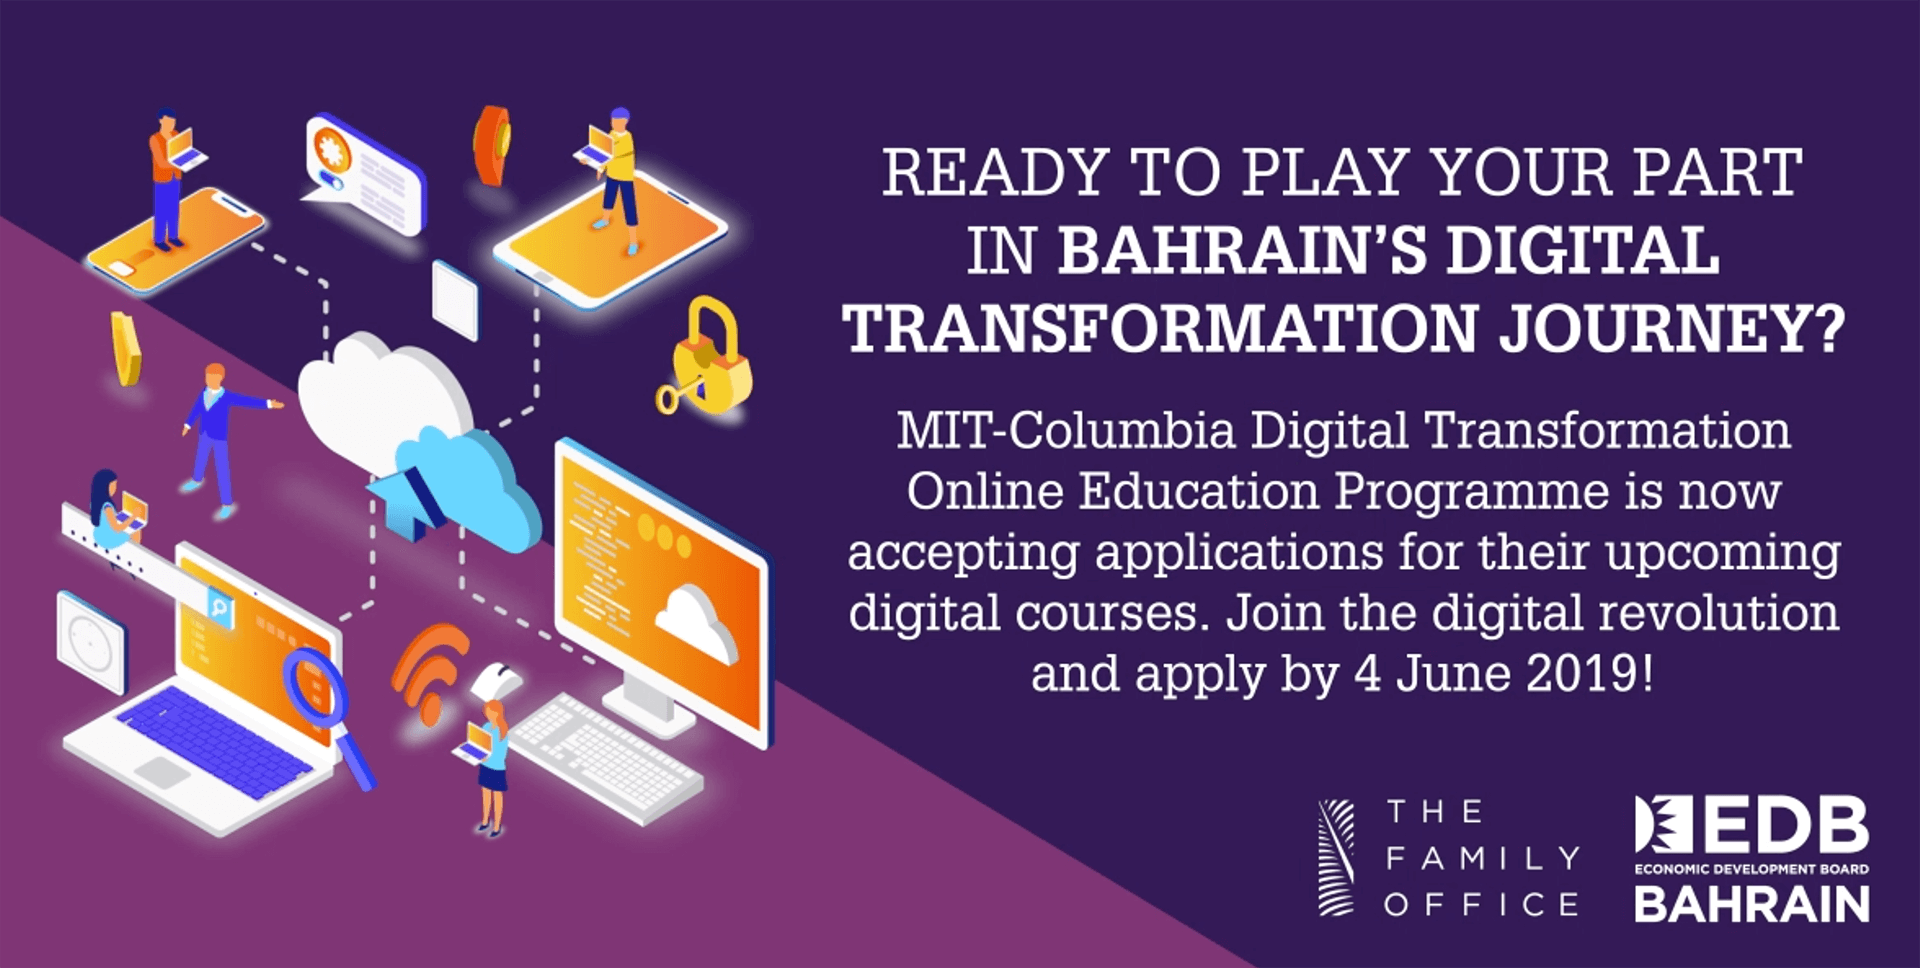 'The Family Office' Launches Programme to Sponsor 100 Bahrainis to Attend Digital Transformation Courses